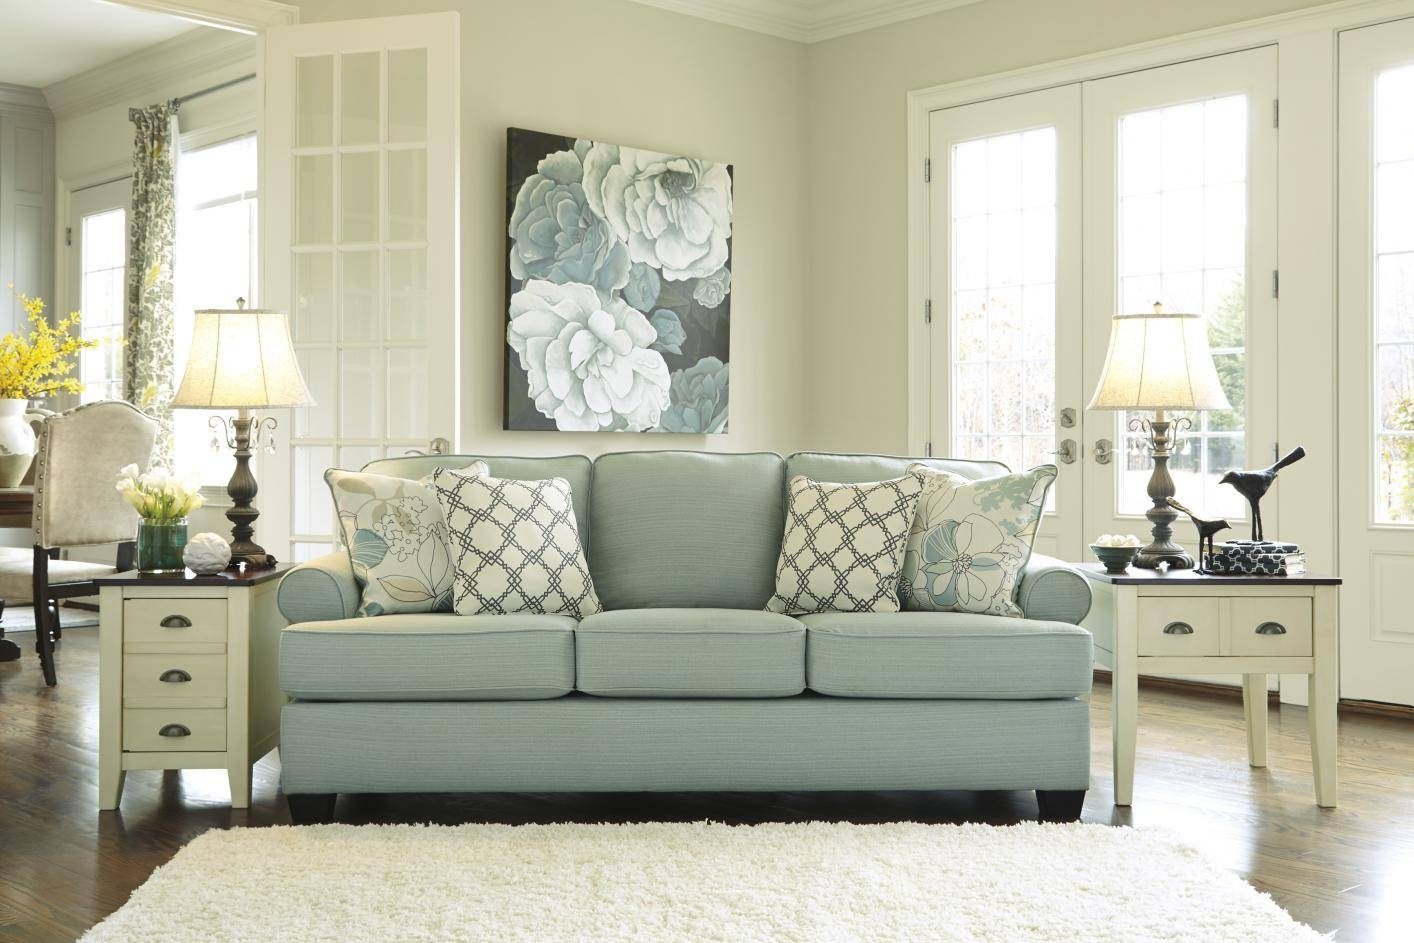 Daystar Seafoam Green Fabric Sofa - Steal-A-Sofa Furniture Outlet for Seafoam Green Sofas (Image 8 of 15)